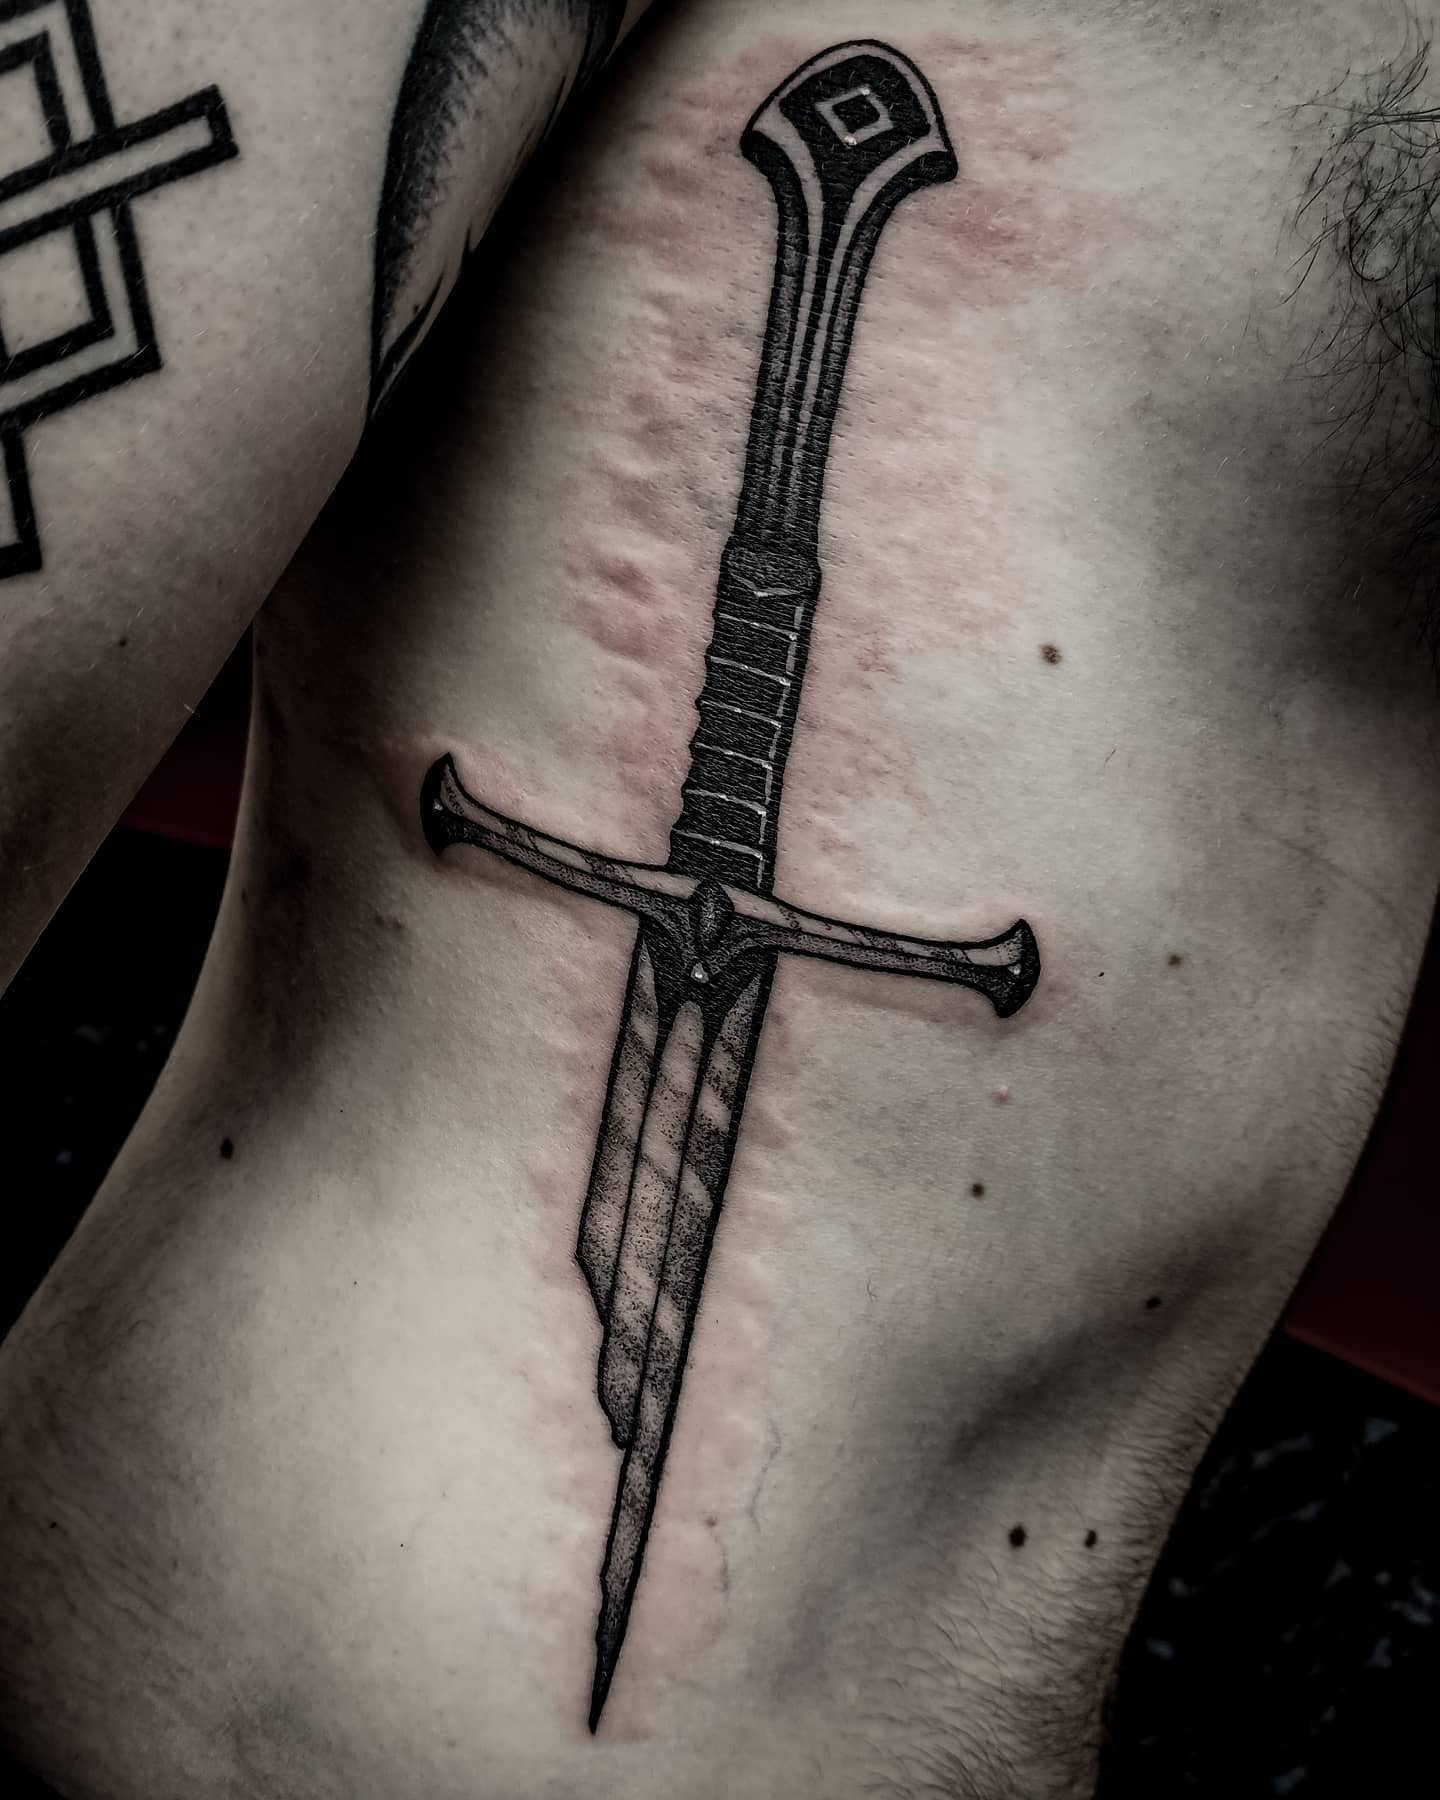 Narsil sword on the super champion liamdodds_96 Who survived by my inked sword  But we are alive and is all good 🤘💪 nobody died xd